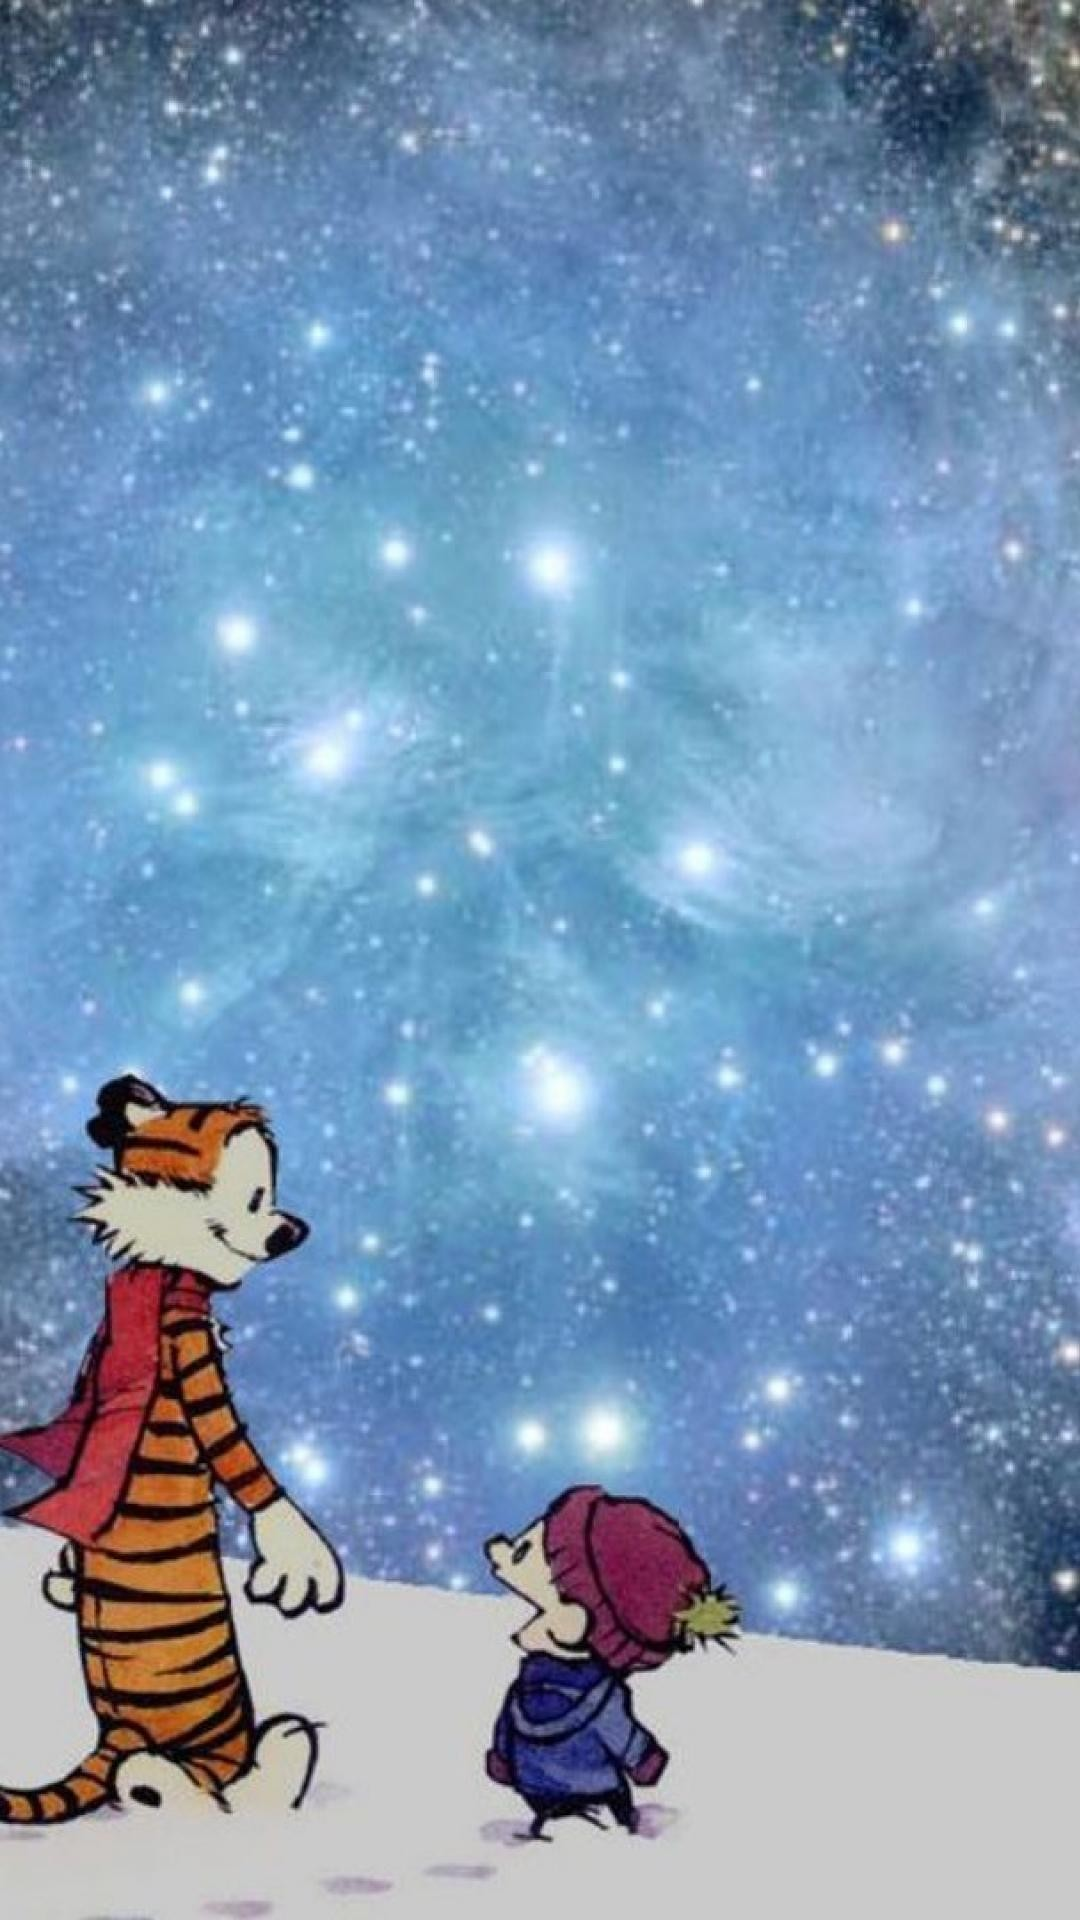 1080x1920 Calvin And Hobbes Wallpaper Widescreen Space - #pr-energy Download  Wallpapers, Download 2560x1920 cartoons outer space night .